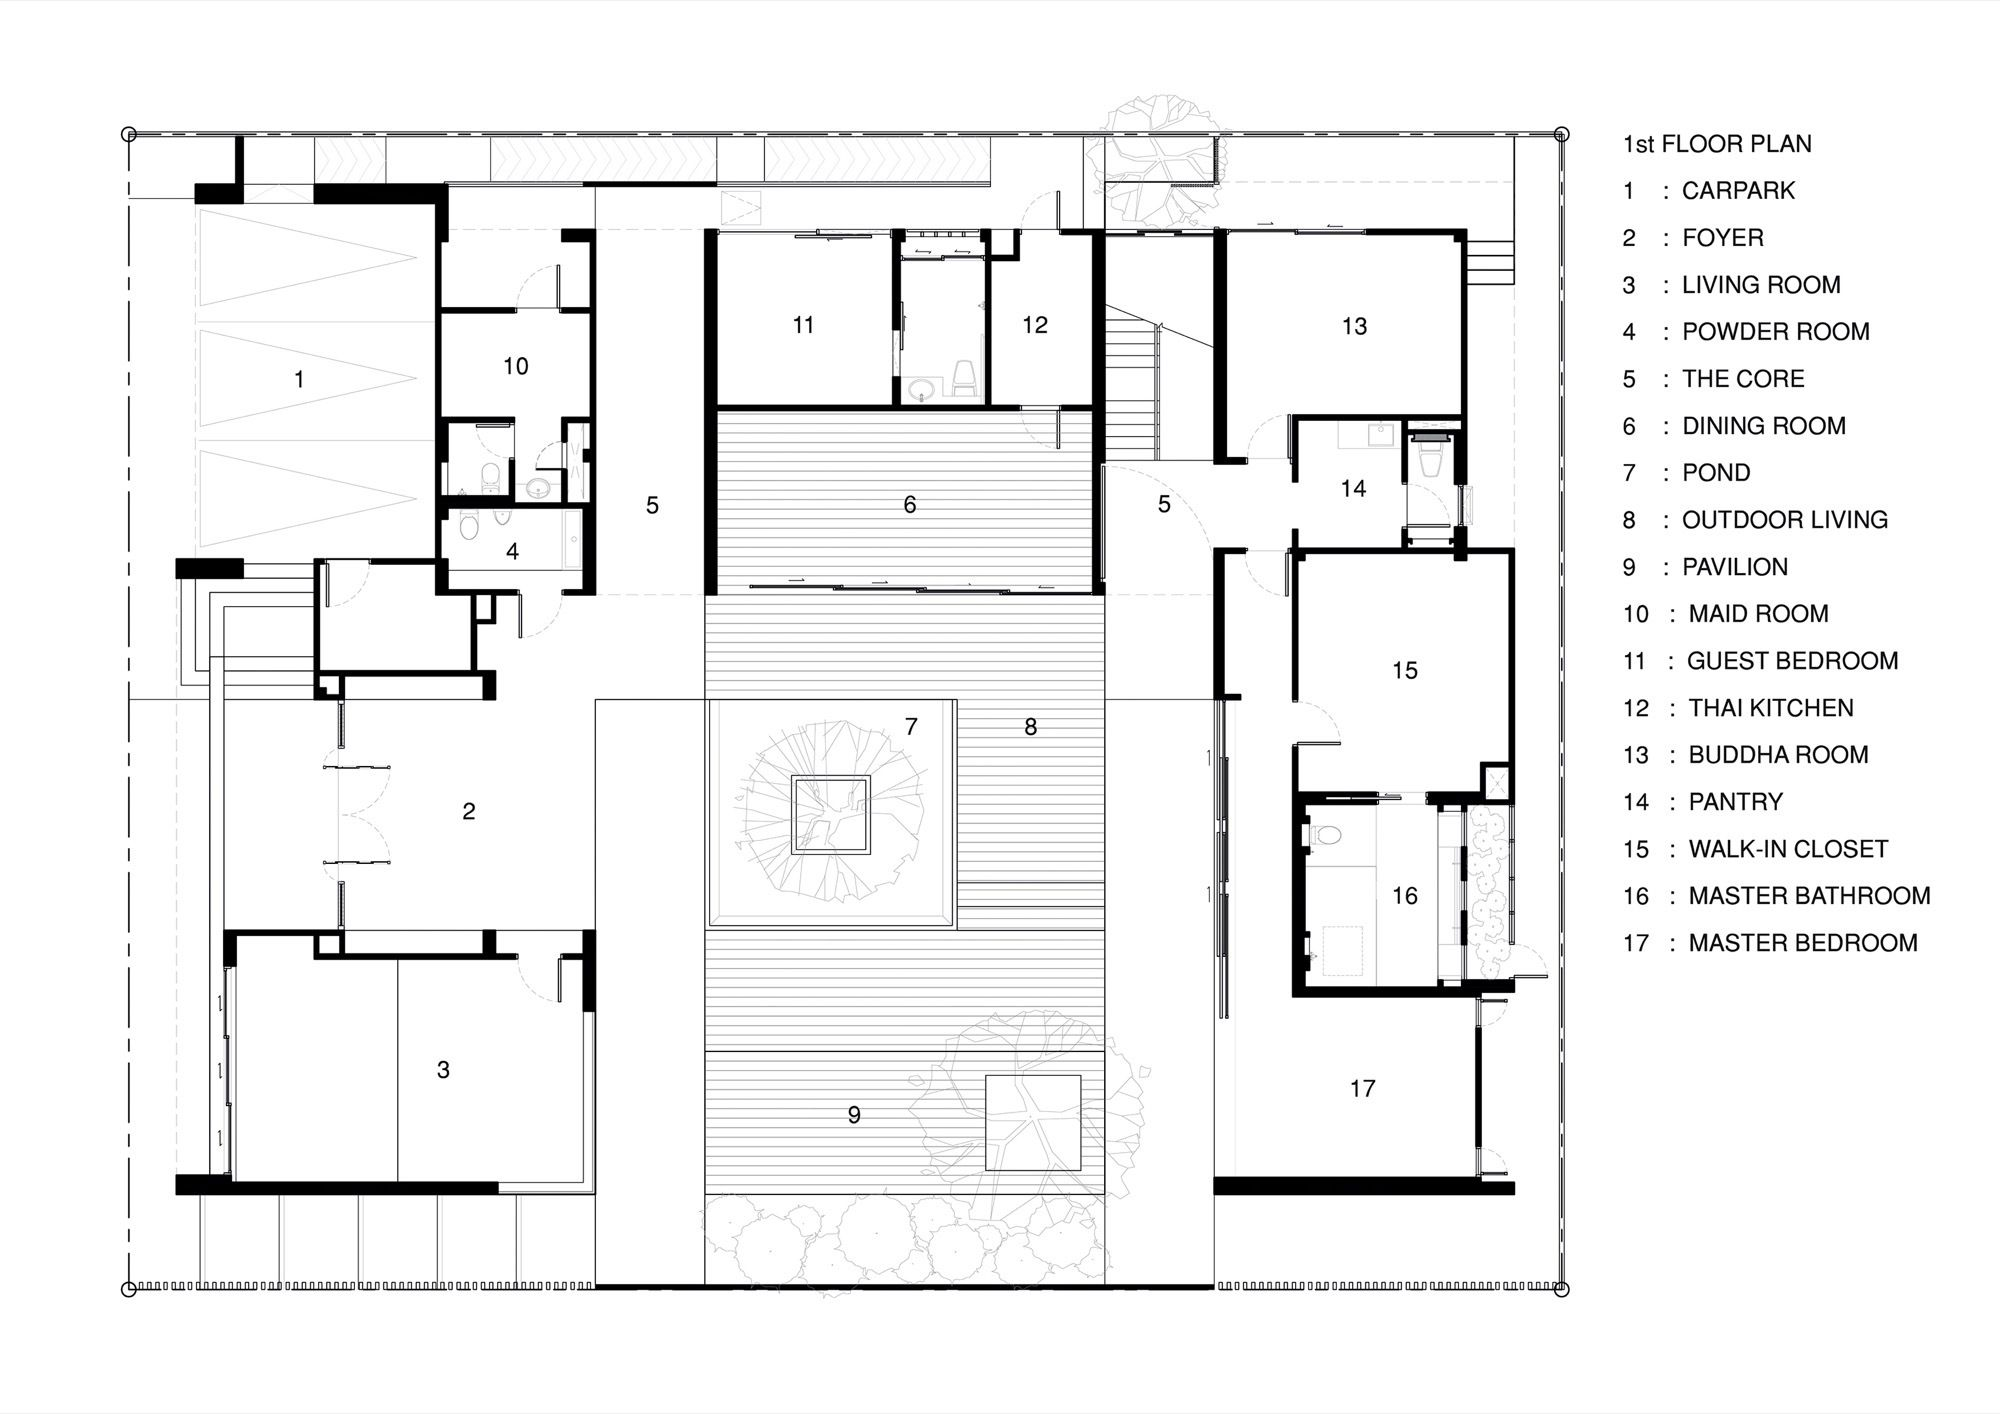 Gallery Of Wind House Openspace Design 29 Drawing House Plans Floor Plans Home Building Design